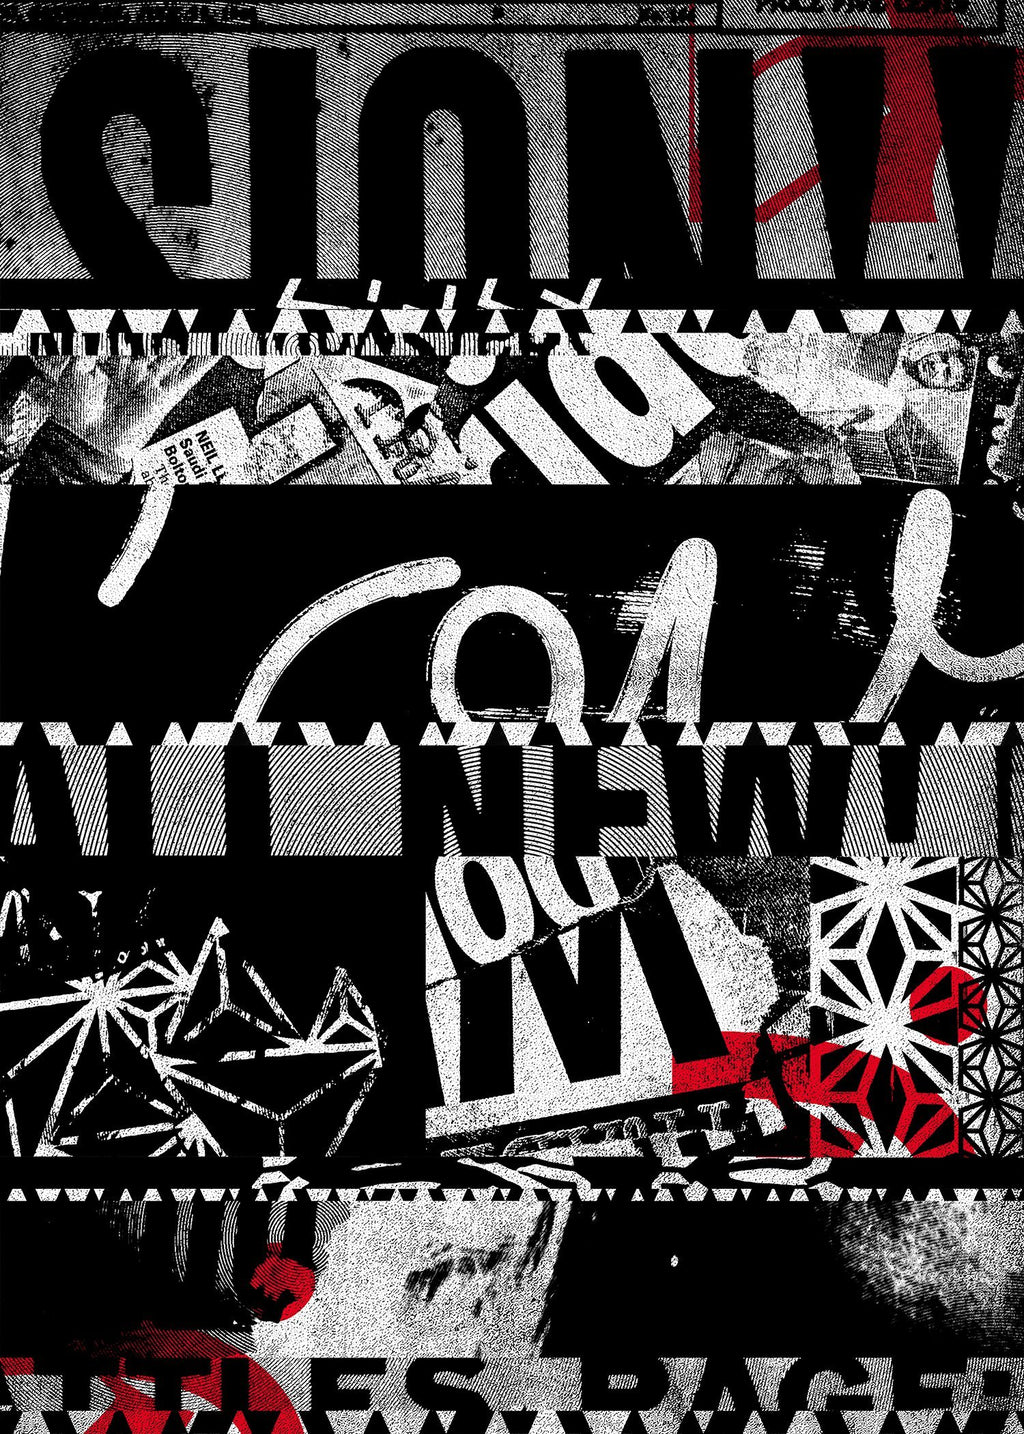 Shredded Abstract Typography 2 Print